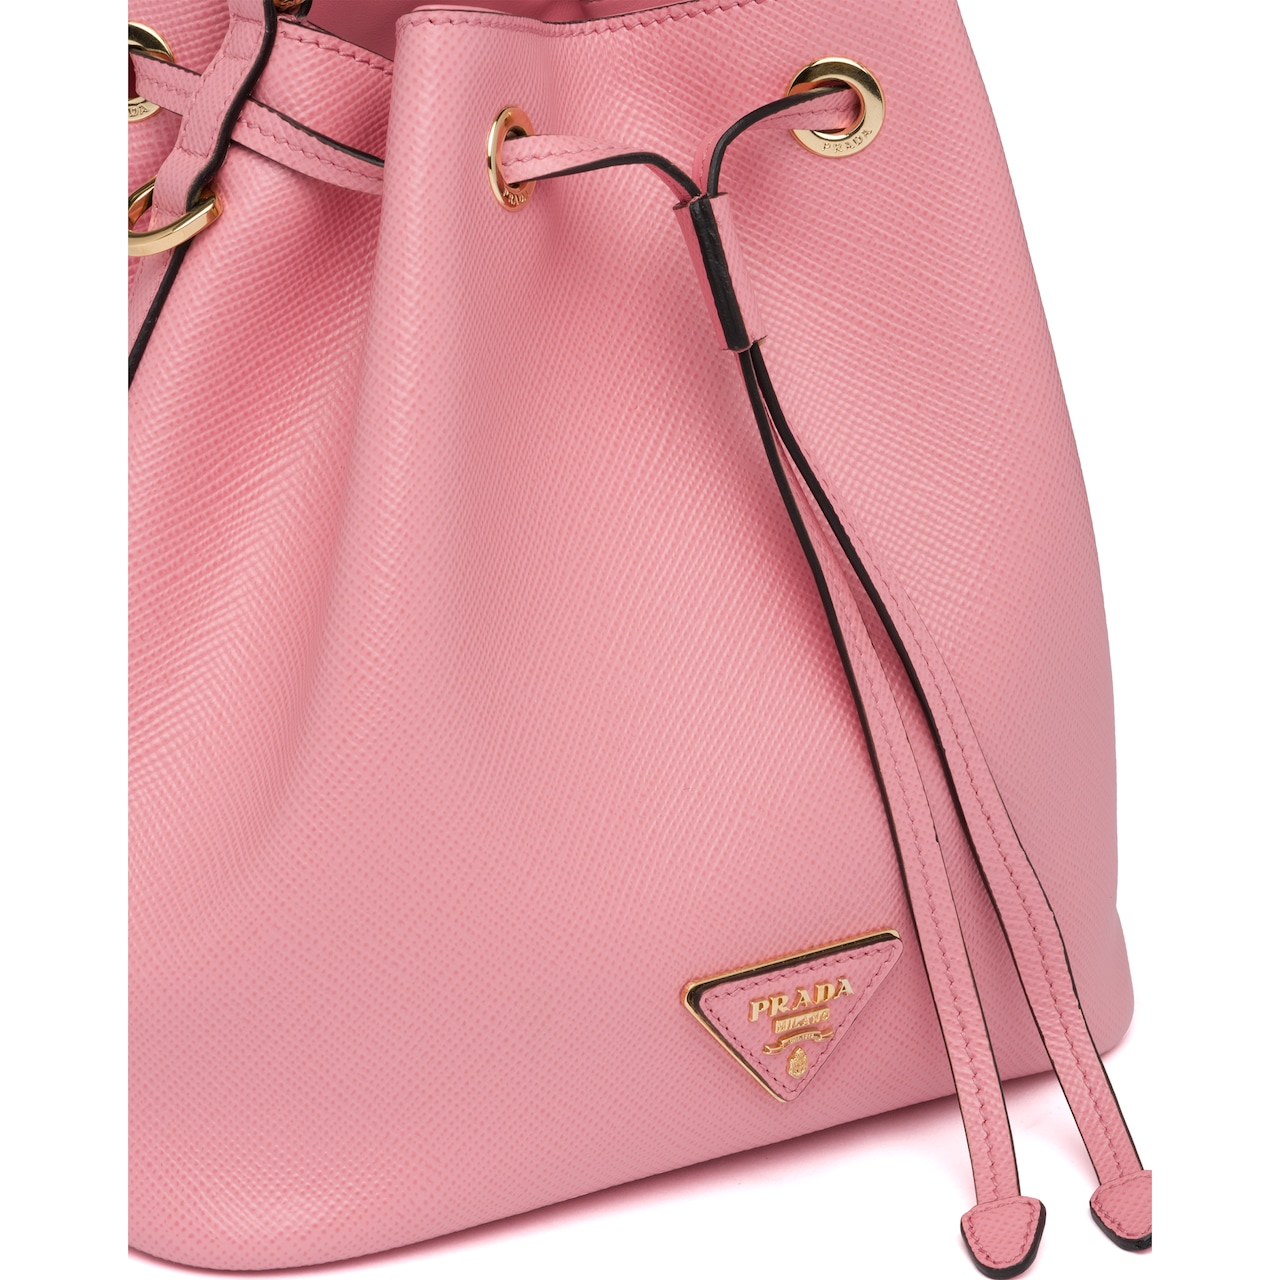 Prada Saffiano leather bucket bag 6